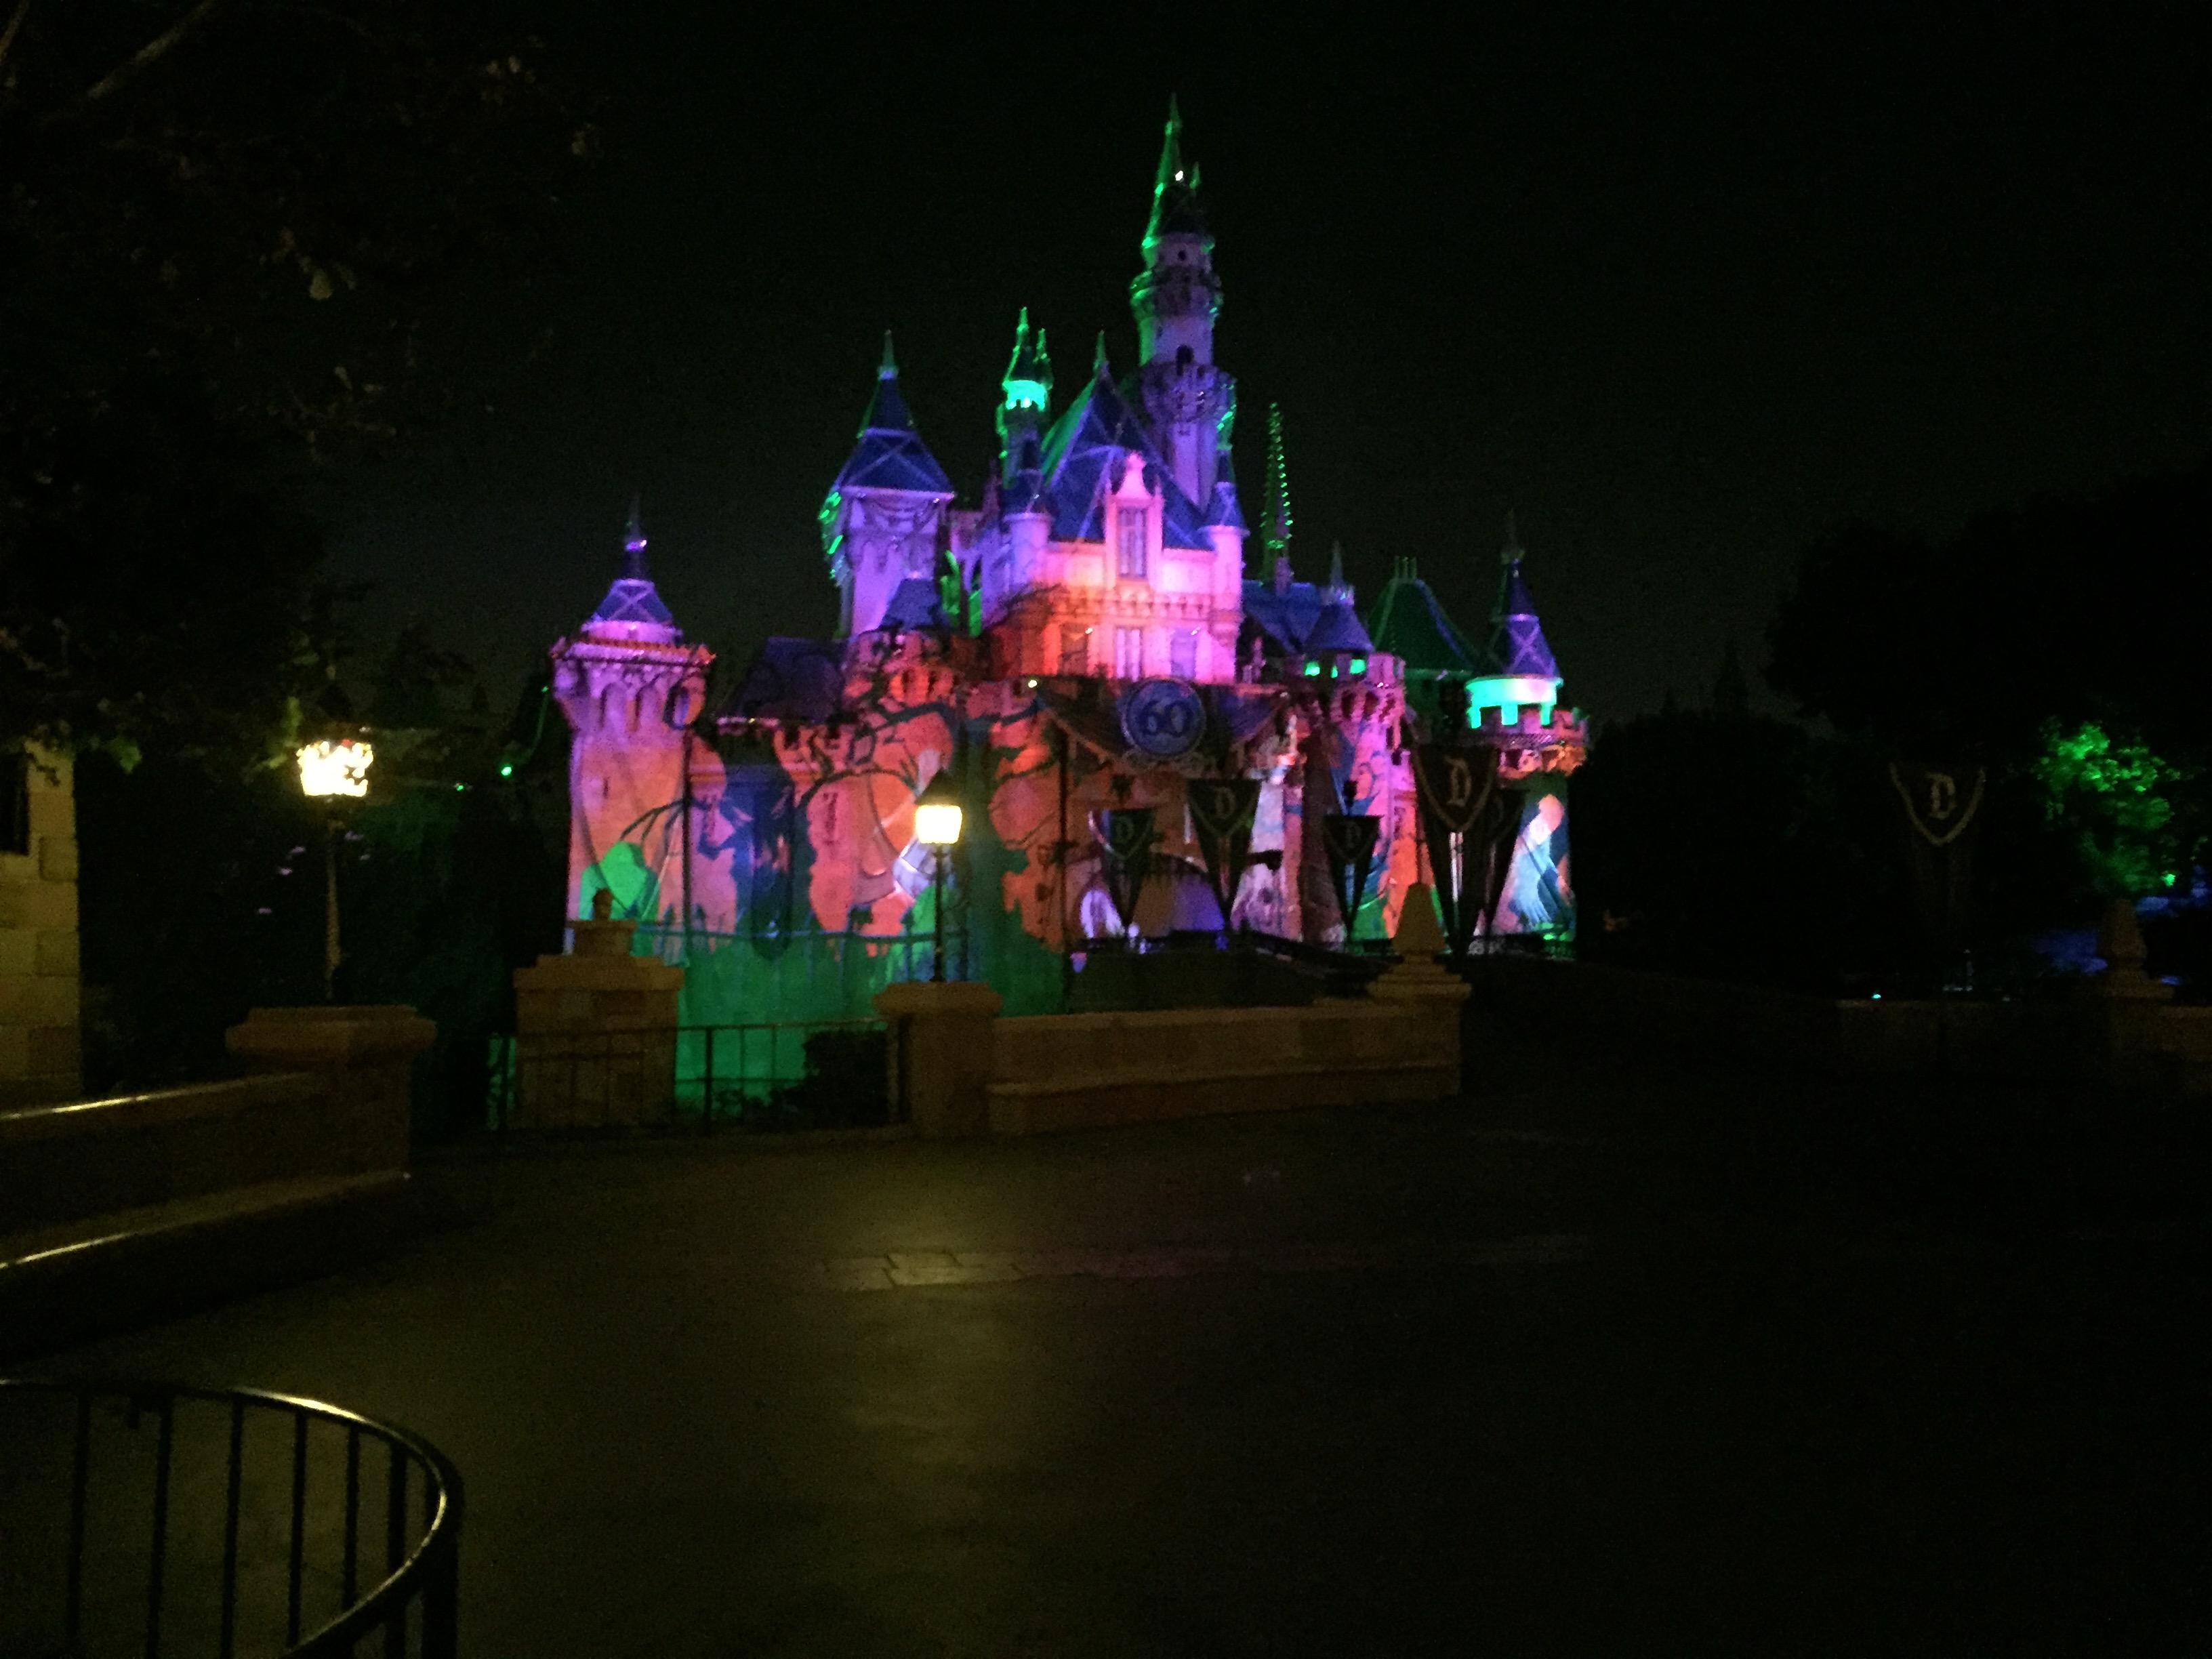 Why Go To Mickey's Halloween Party? – Because It's So Much Fun!